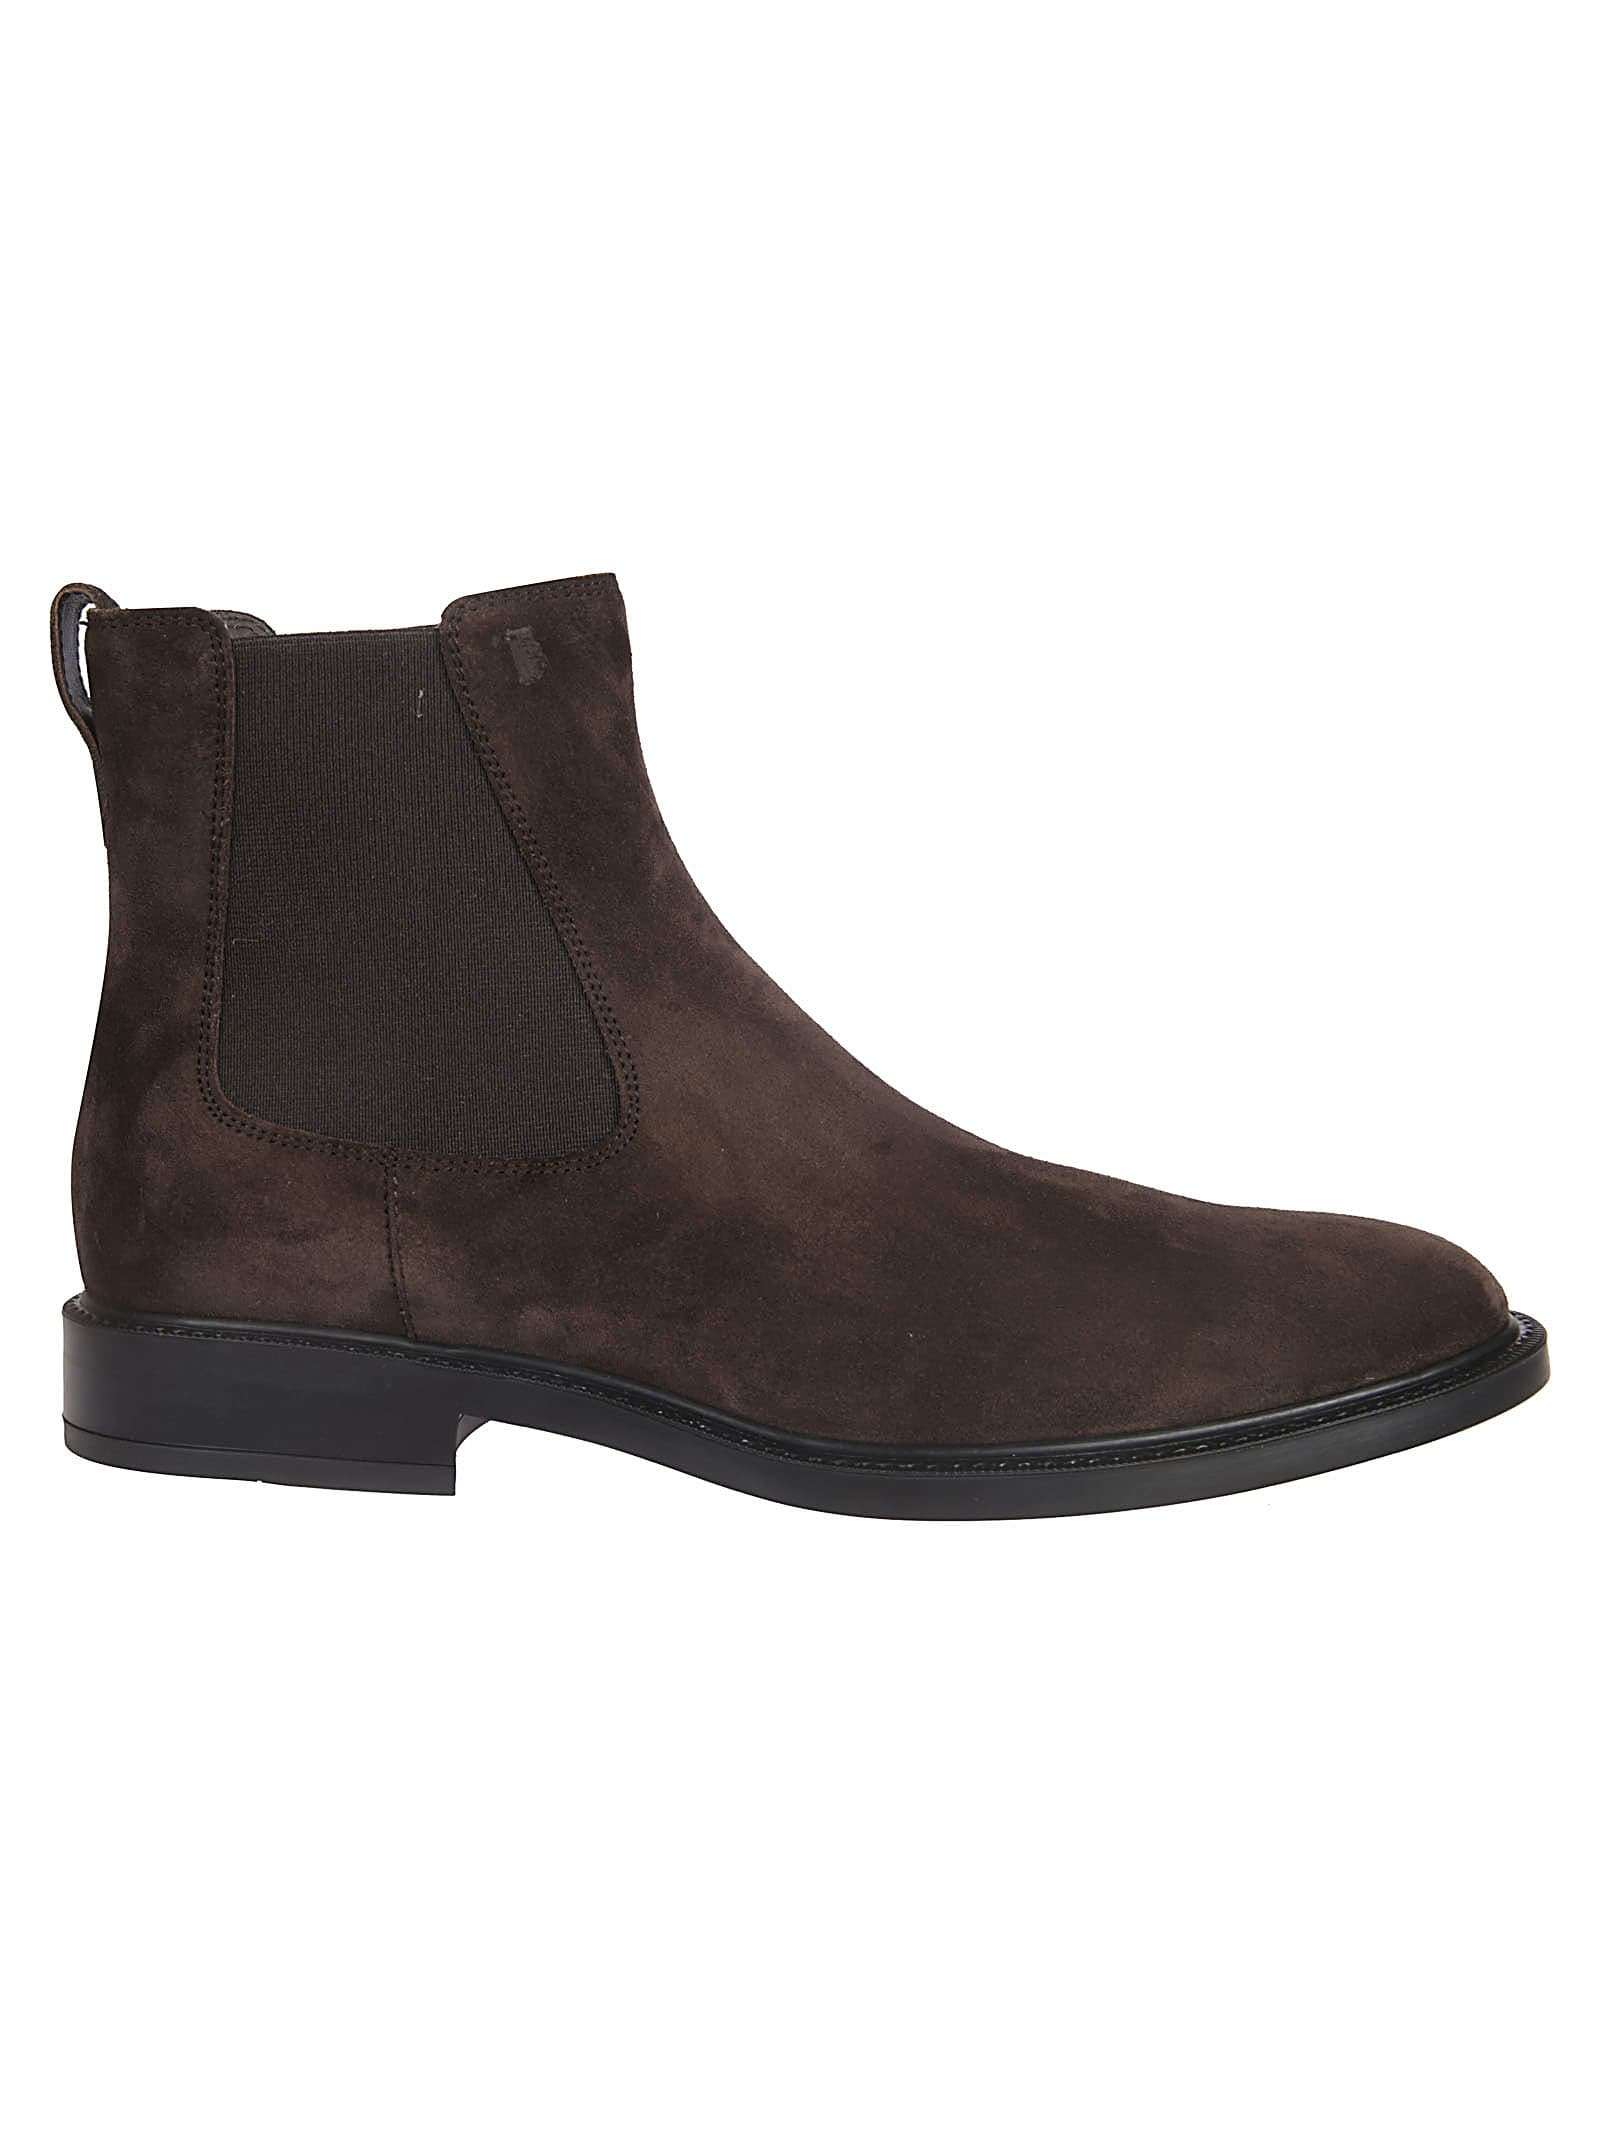 Tods Classic Chelsea Boots